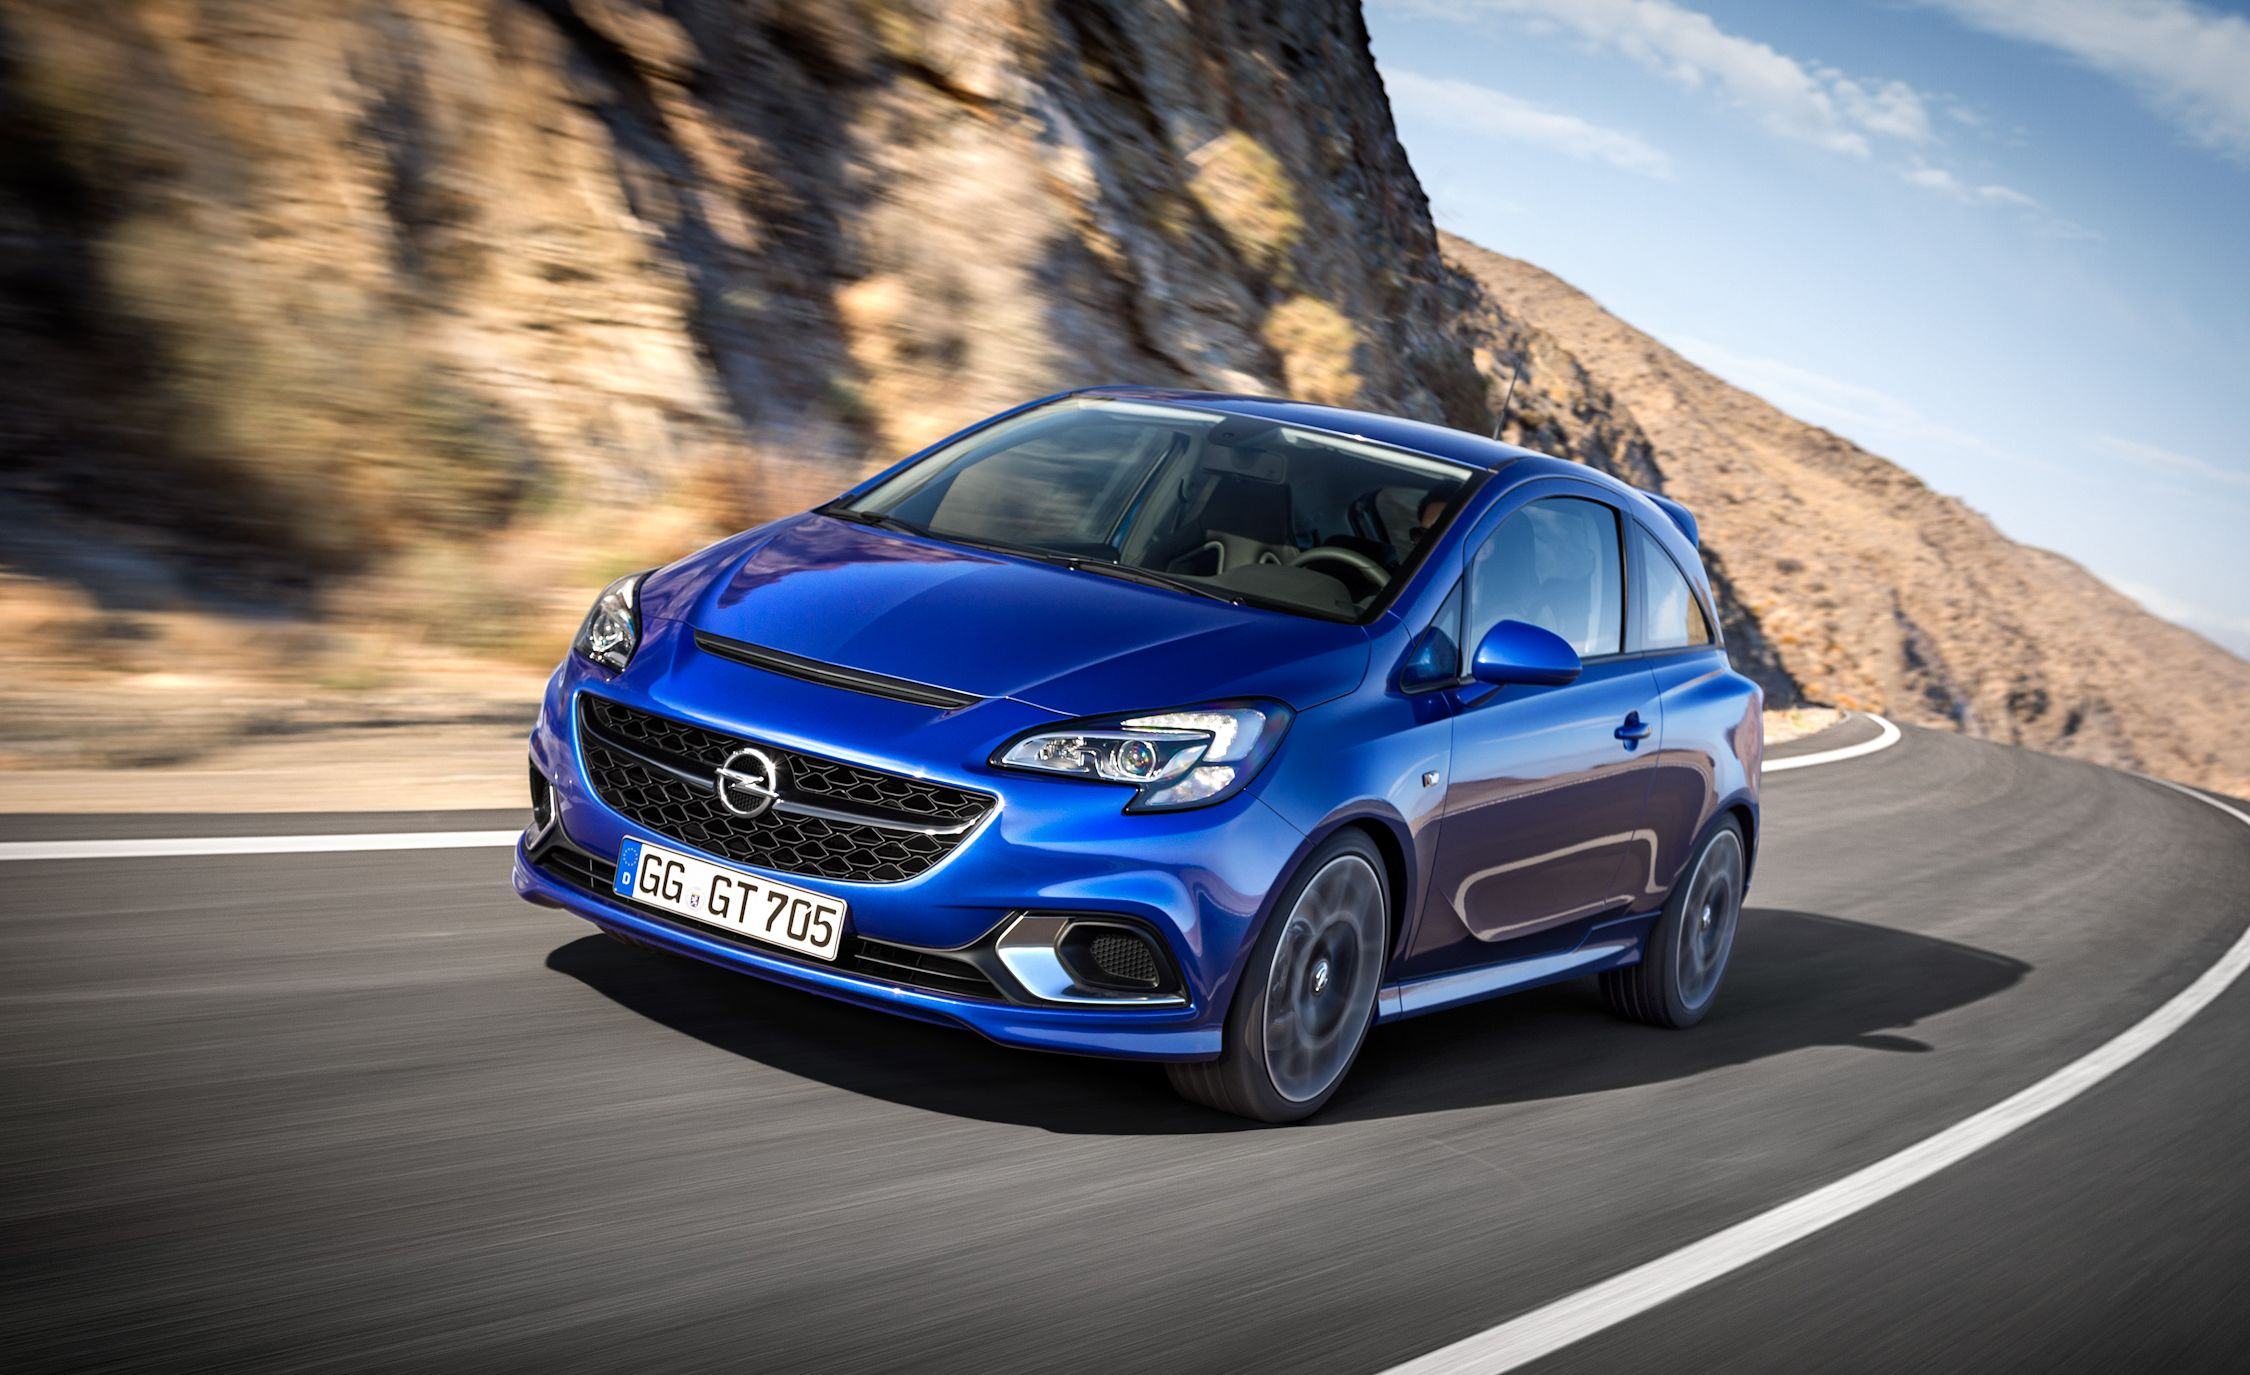 The Opel Corsa Opc Is Gm S Fiesta St News Car And Driver Car